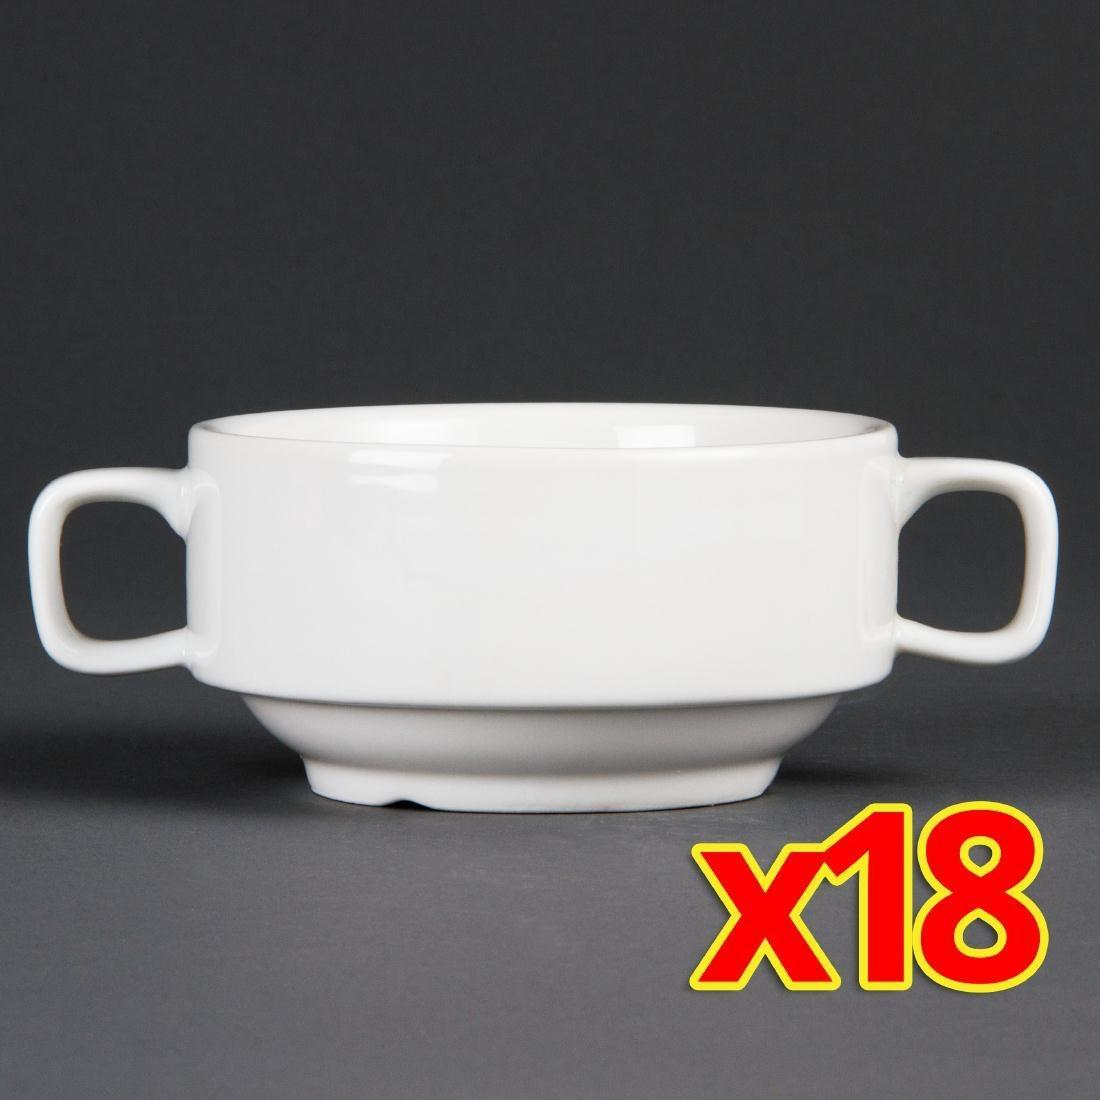 Bulk Buy Pack of 18 Olympia Handled Soup Bowls 400ml